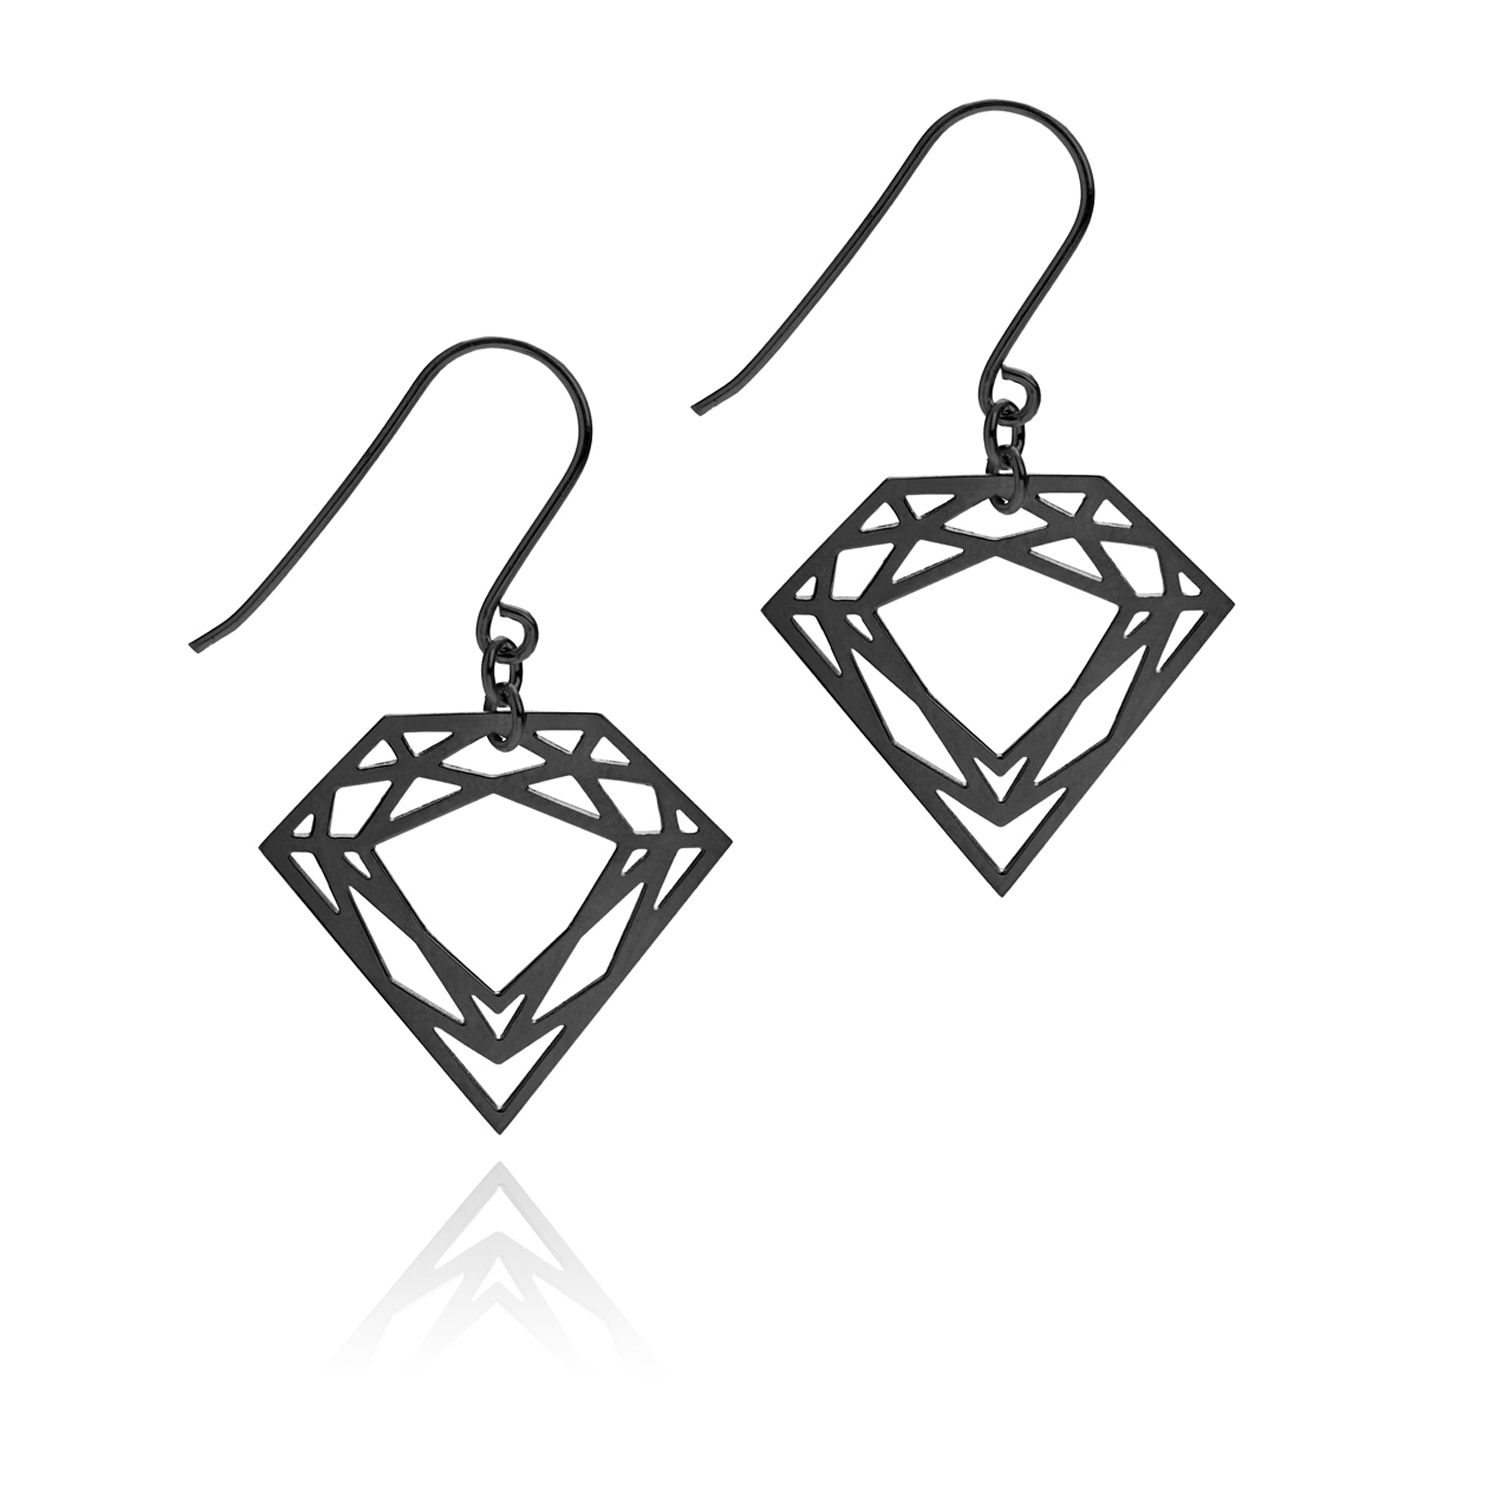 Diamond earrings clipart.